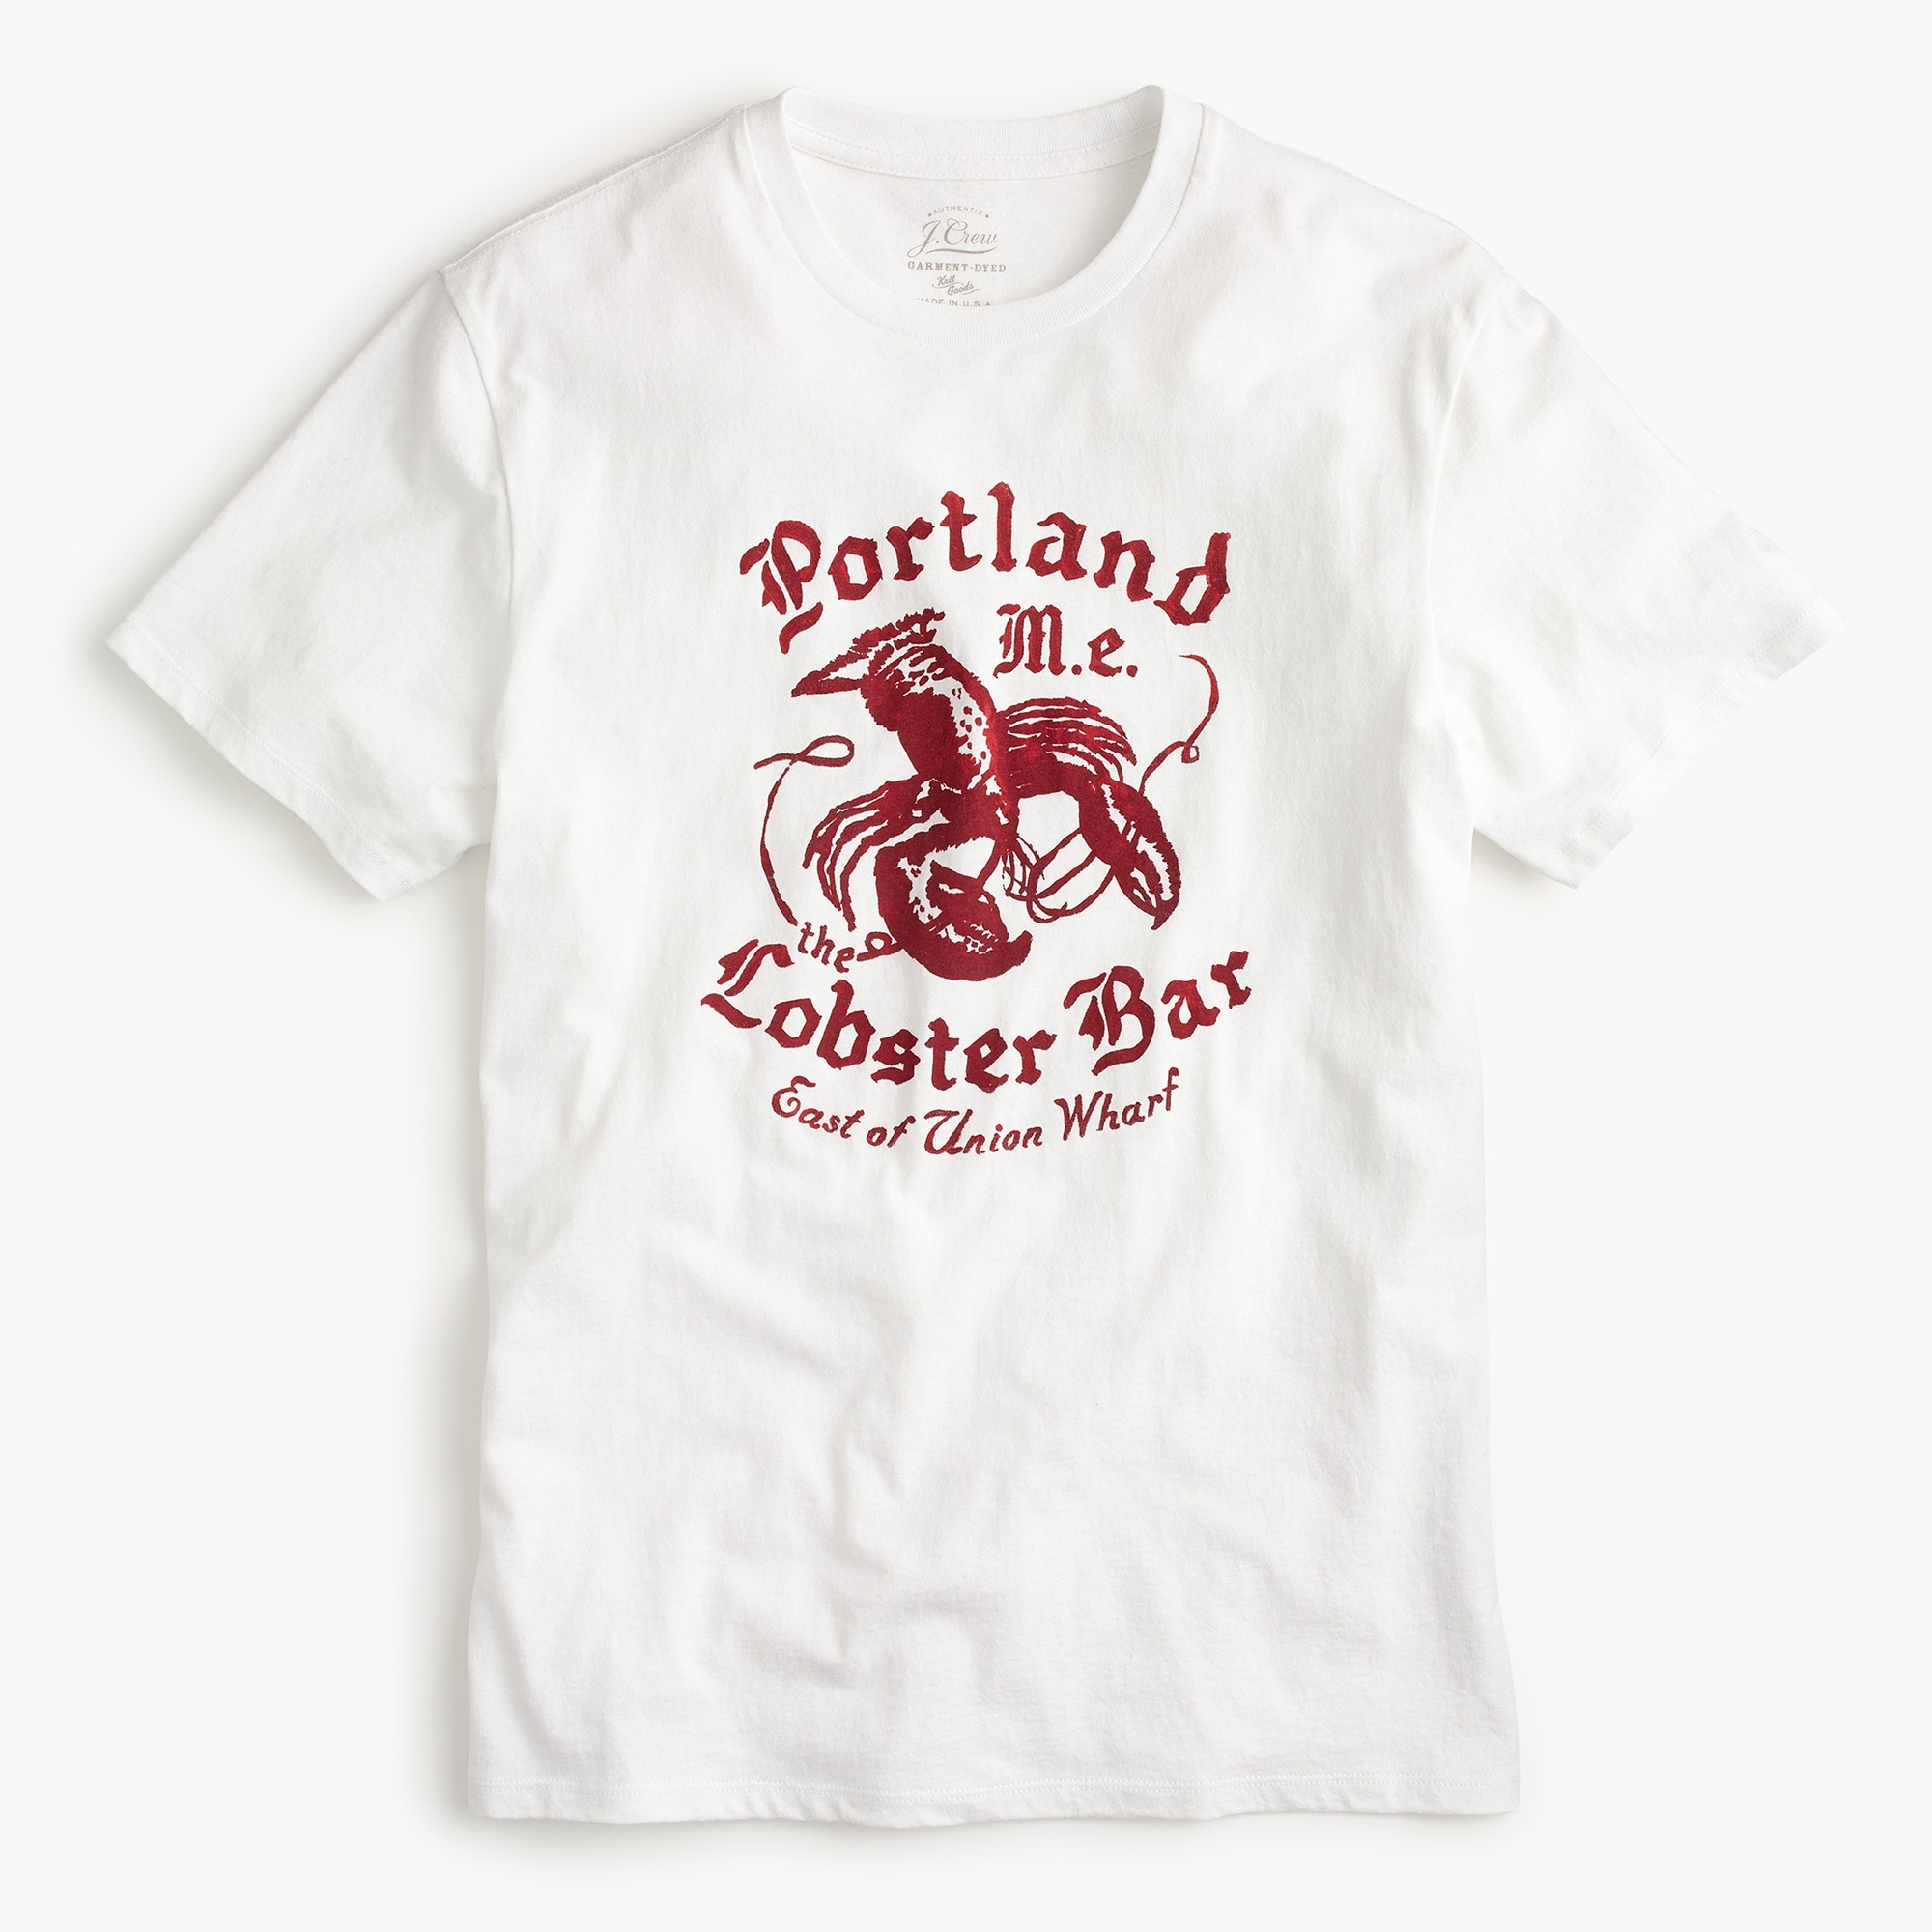 Portland Lobster Bar graphic T-Shirt men new arrivals c